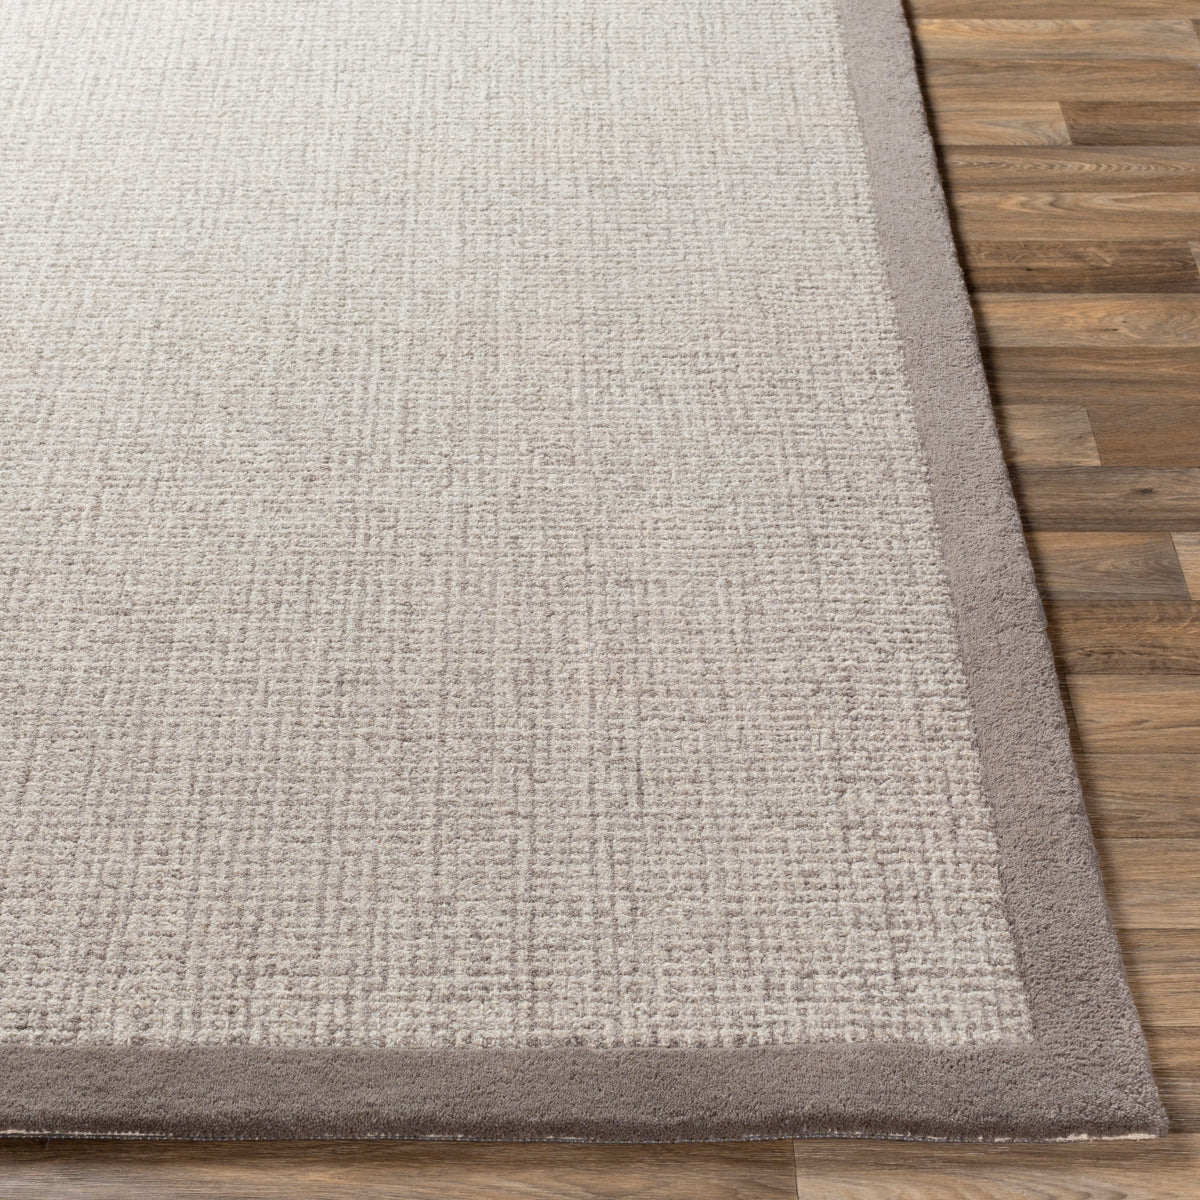 Hand Tufted Wool Border Rug Gray The Design Tap